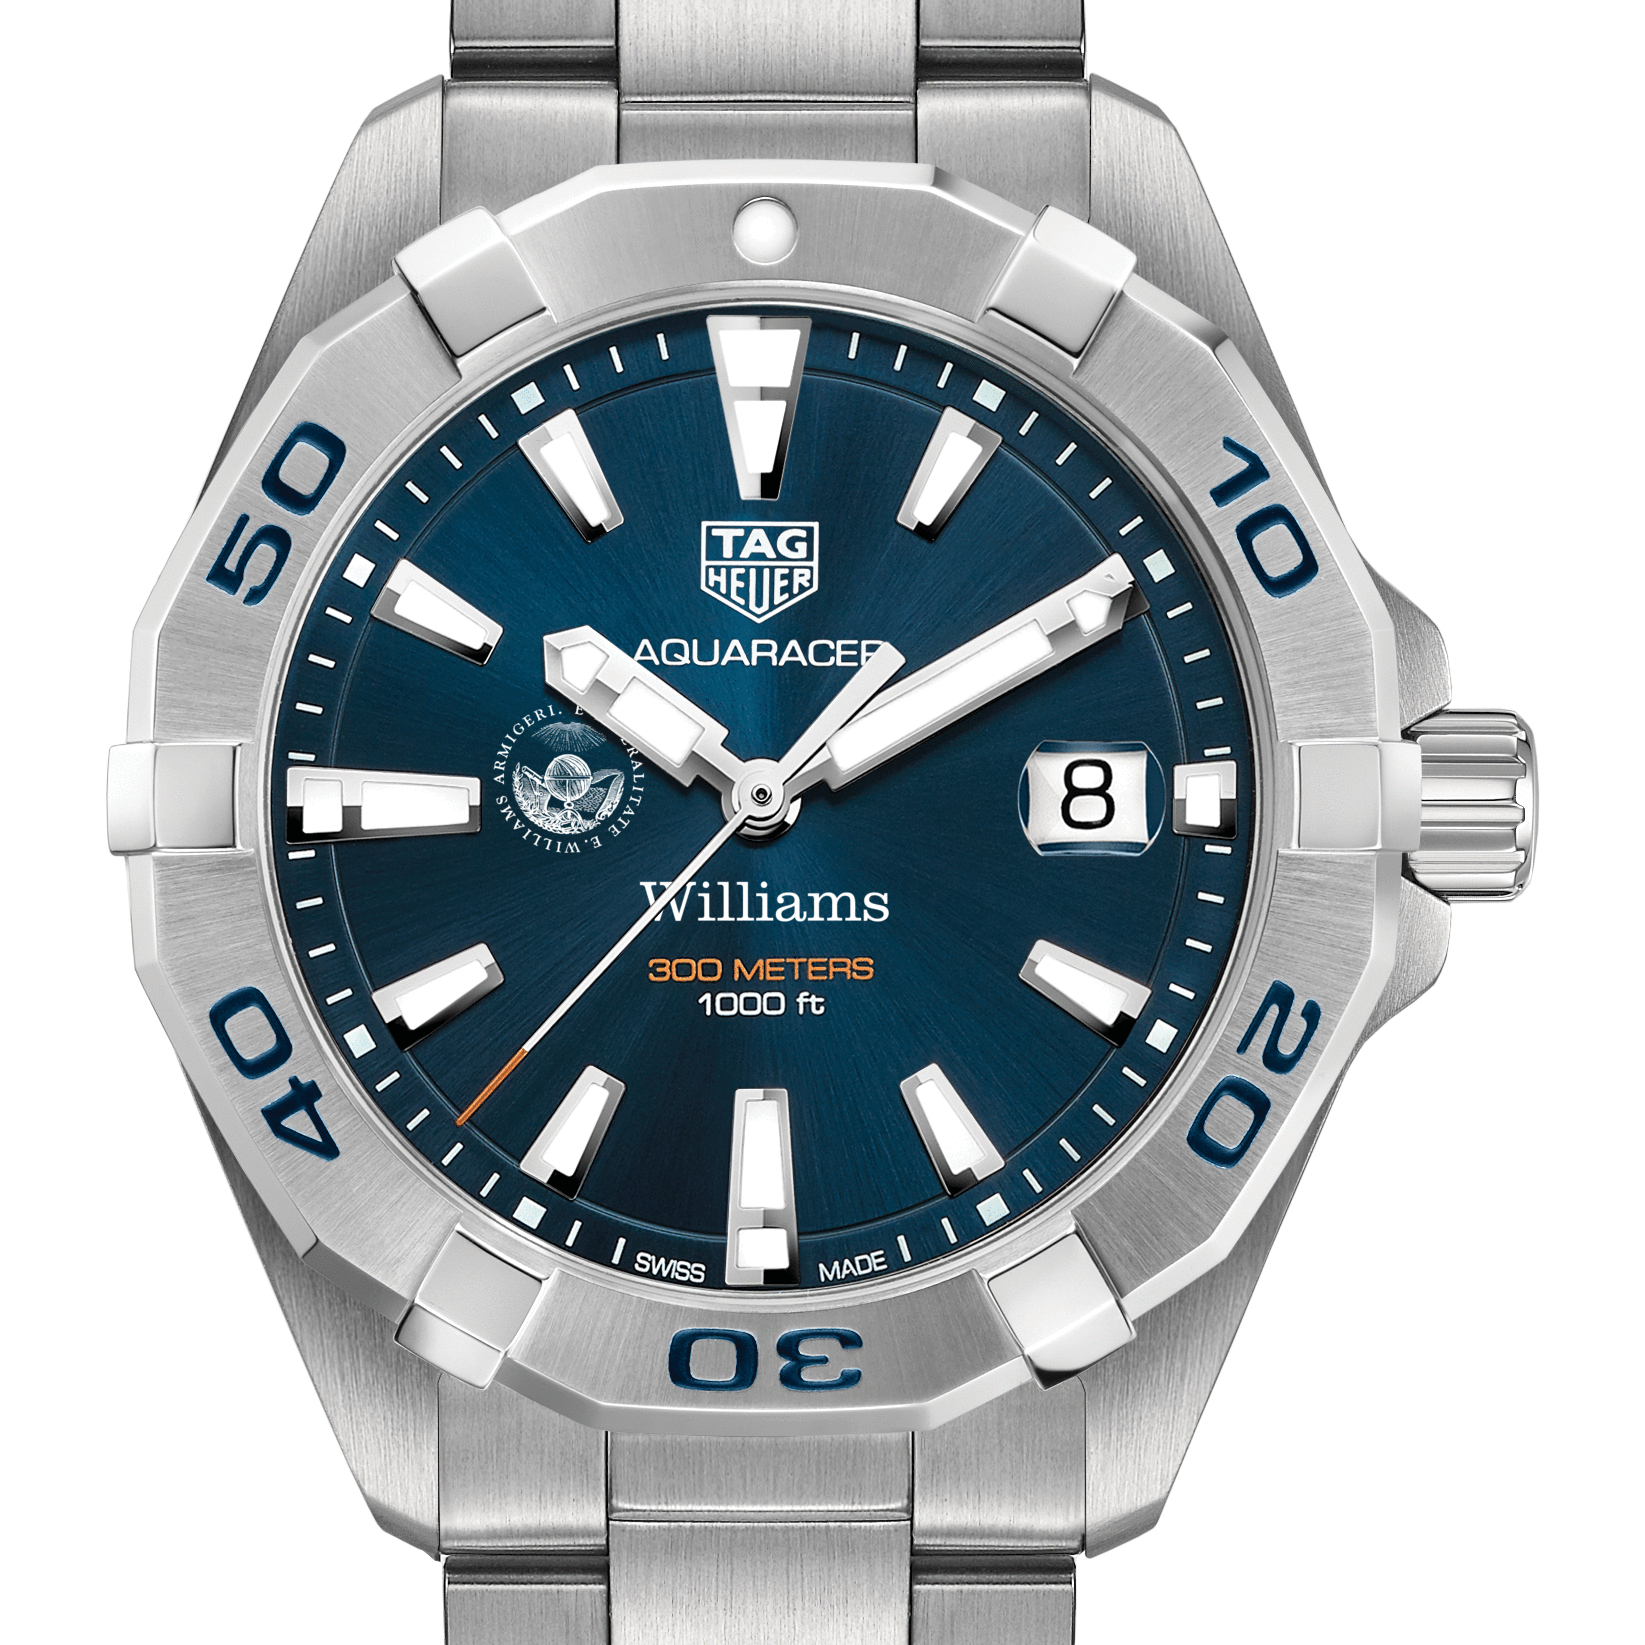 Williams College Men's TAG Heuer Steel Aquaracer with Blue Dial